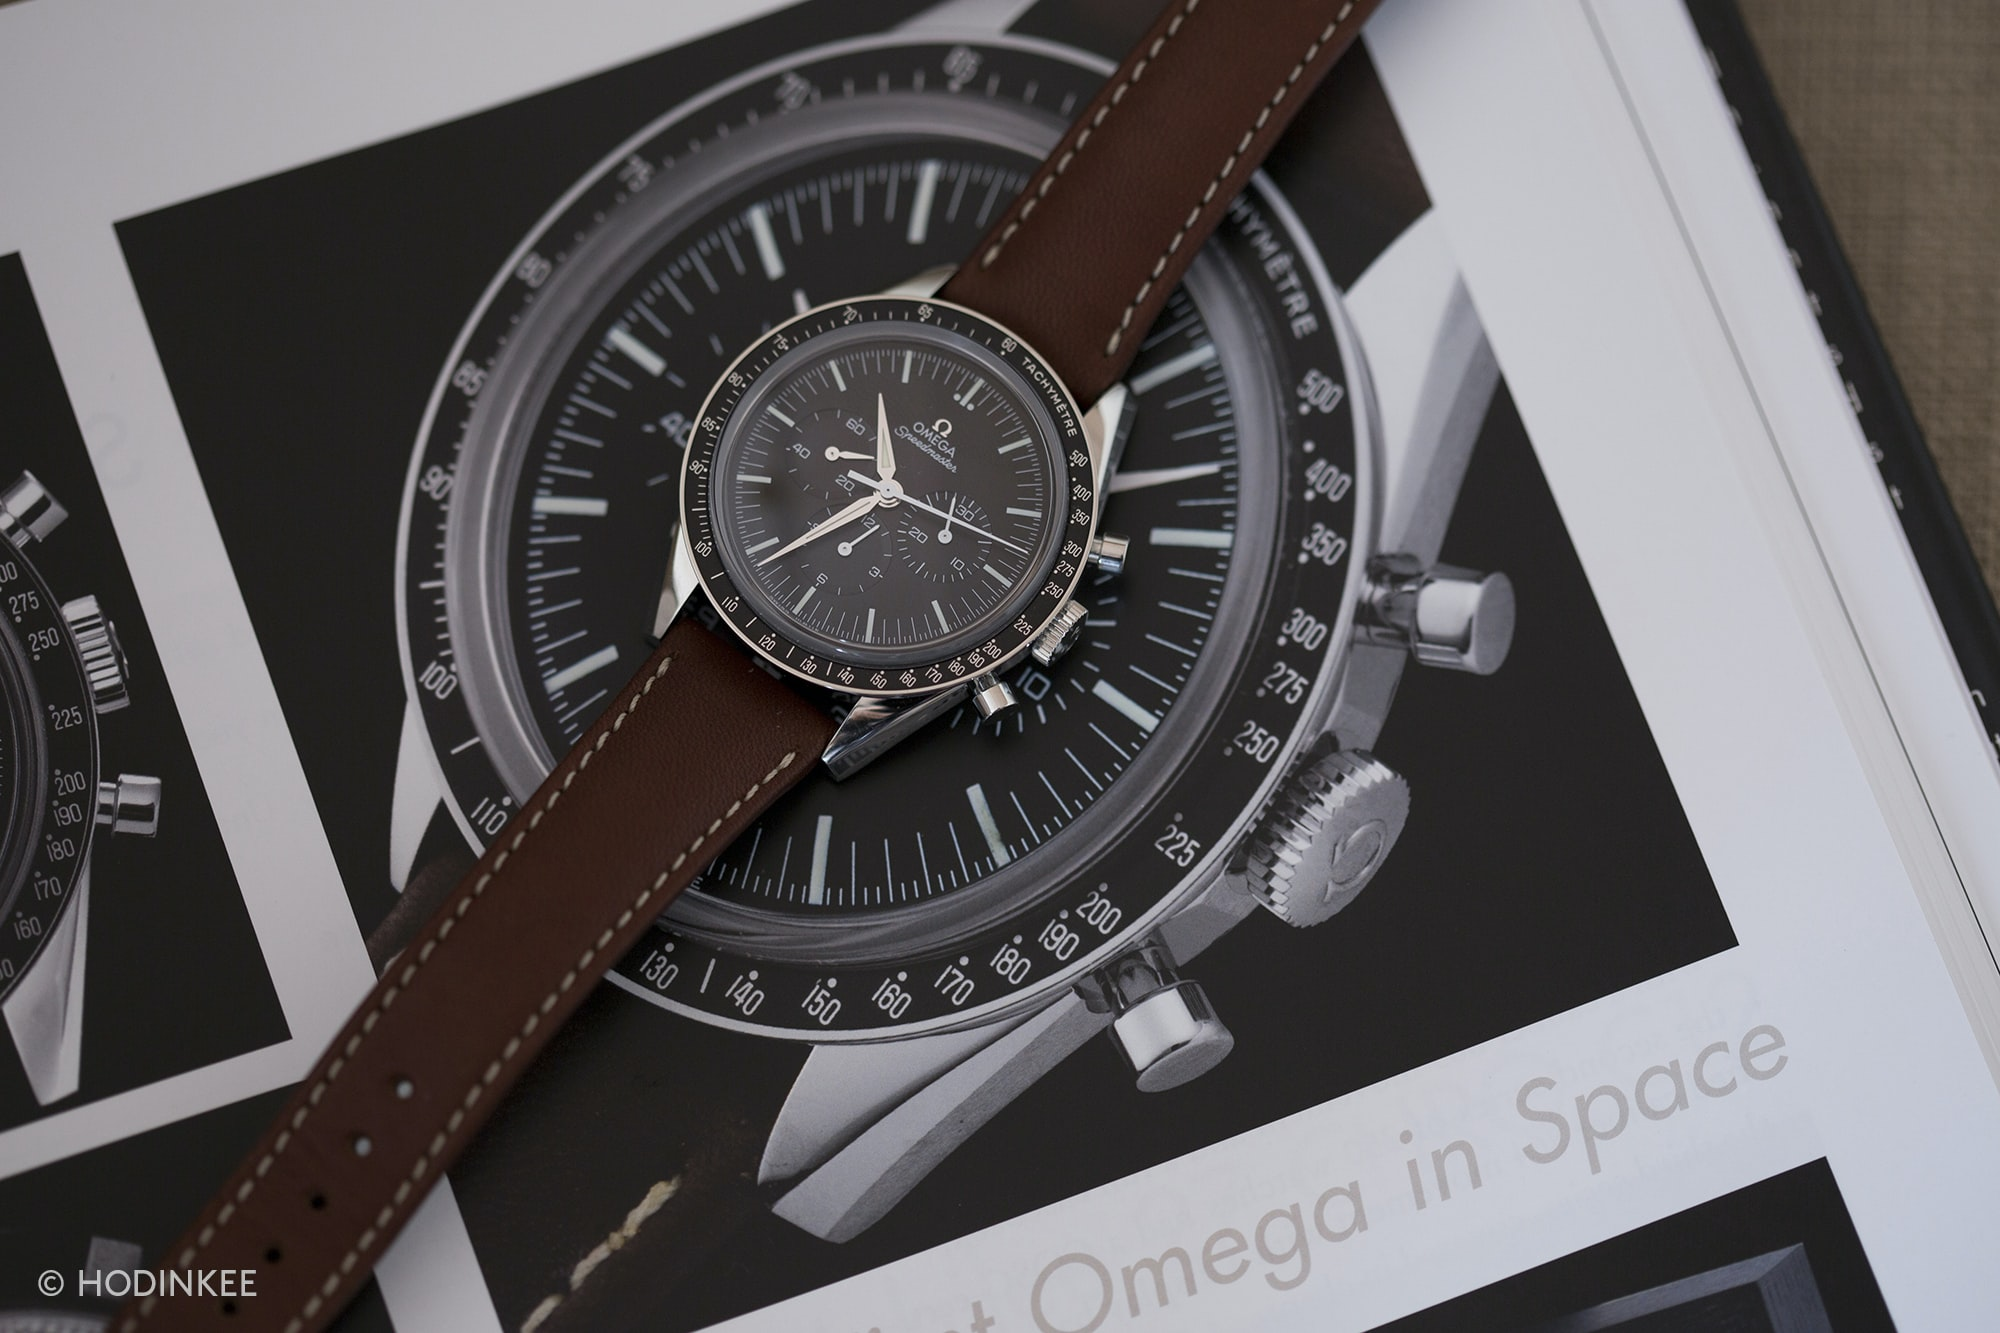 Omega Speedmaster First Omega In Space Review A Week On The Wrist: The Omega Speedmaster 'First Omega In Space' A Week On The Wrist: The Omega Speedmaster 'First Omega In Space' 588A0177 copy